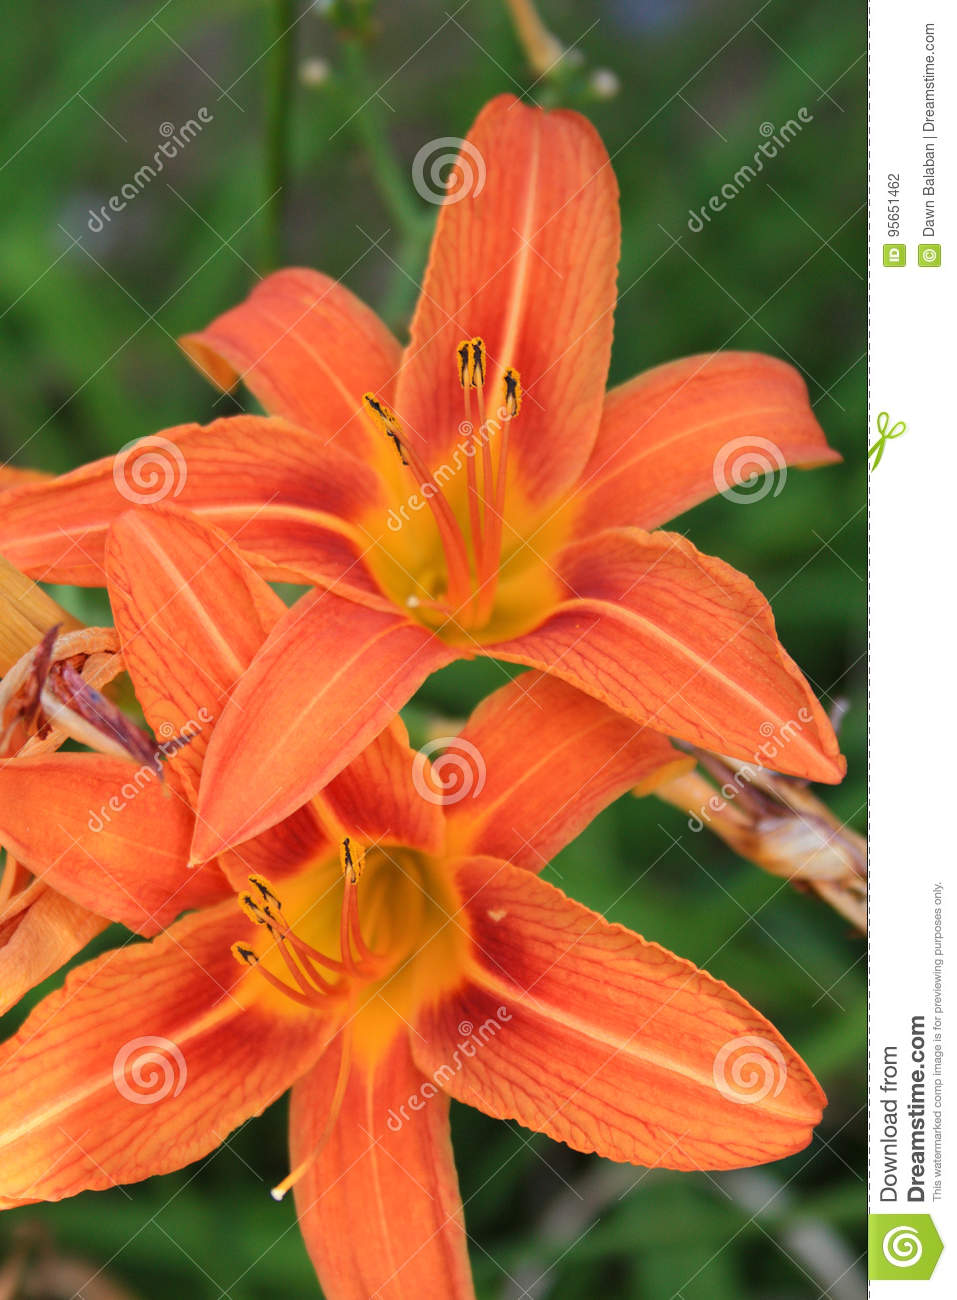 Orange tiger lilies flowers two shot close up stock photo image of orange tiger lilies flowers two shot close up izmirmasajfo Images